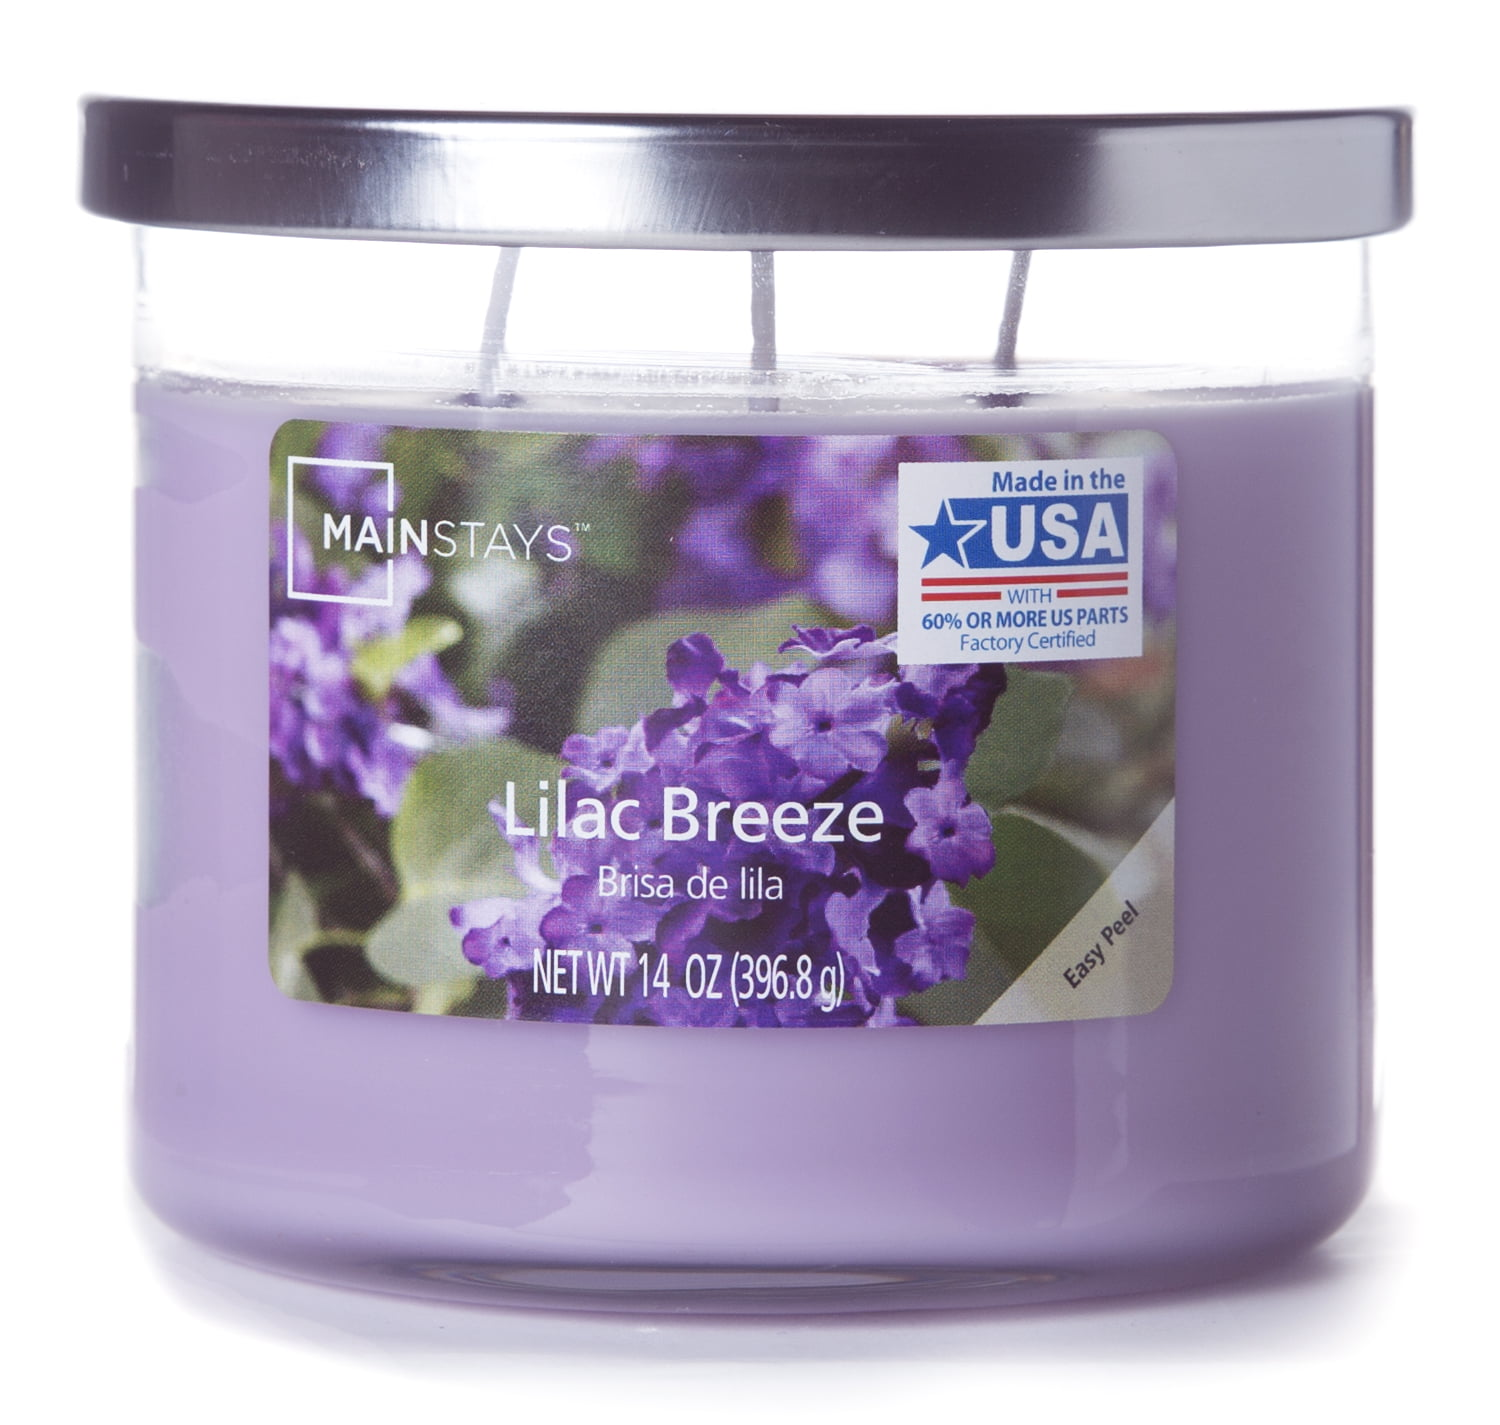 Mainstays Chrome Lid Jar Candle, Lilac Breeze, 14oz by Generic